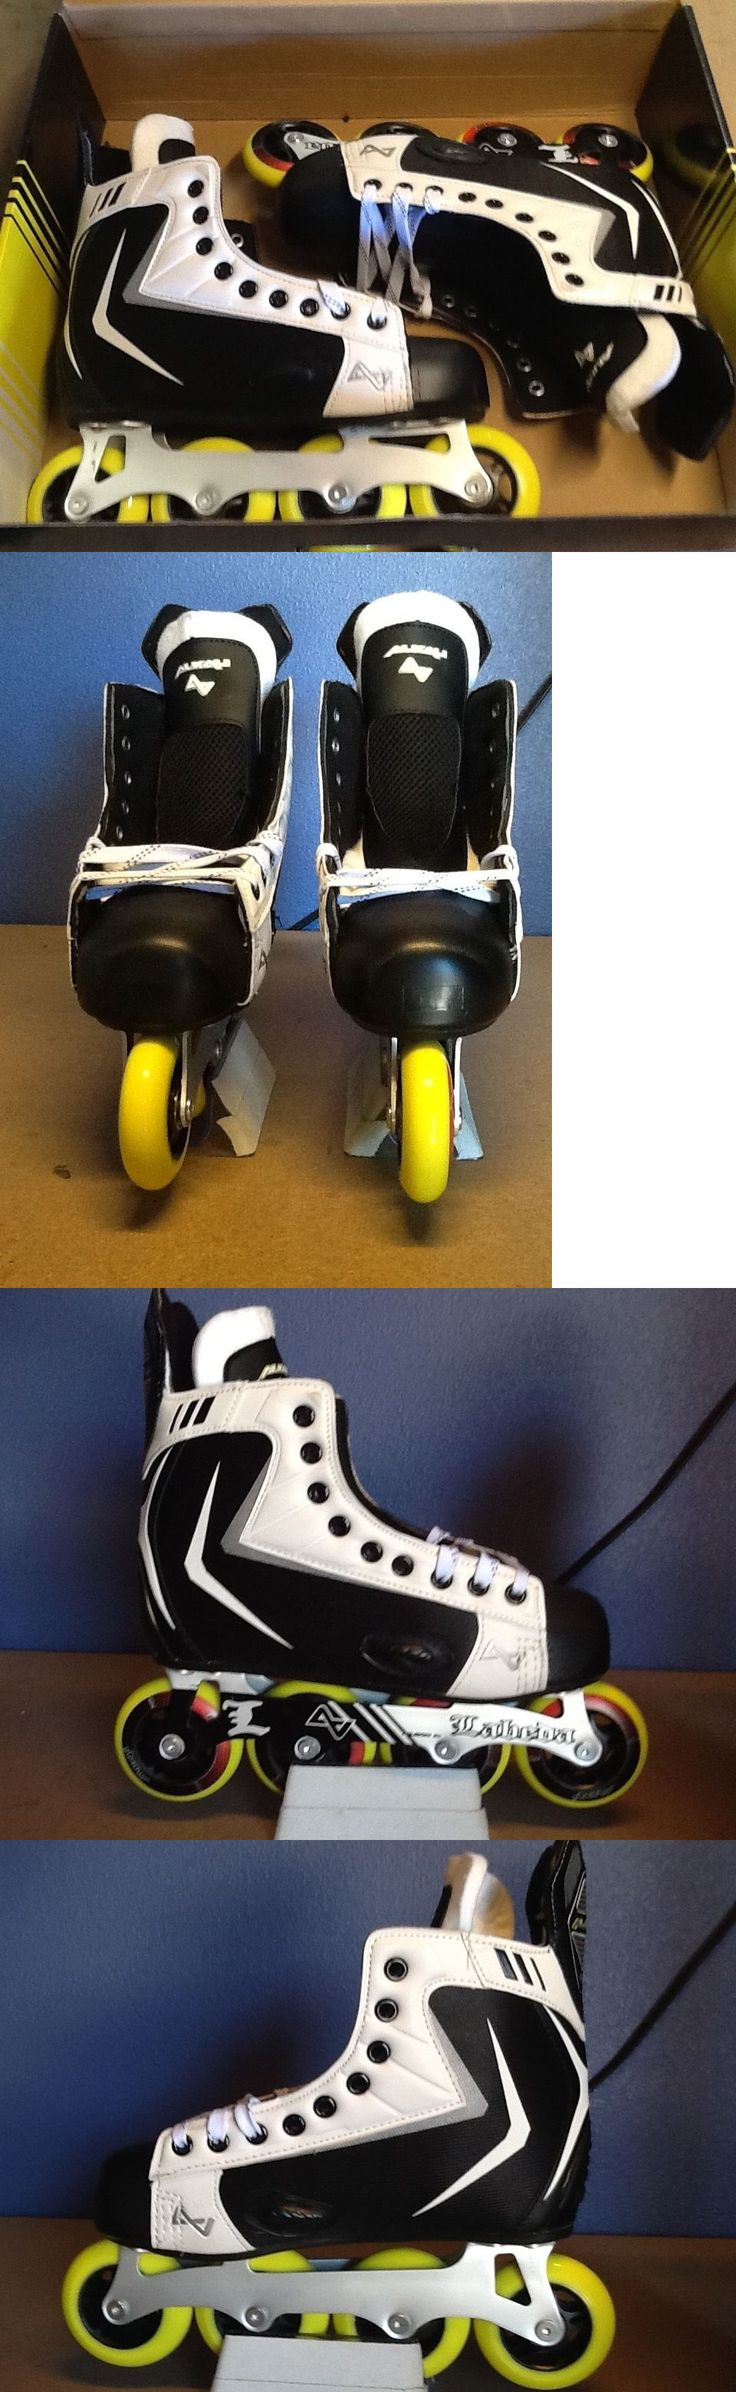 Roller Hockey 64669: Alkali Rpd Lite R Inline Hockey Skates - Sz 8.0 D -> BUY IT NOW ONLY: $65 on eBay!